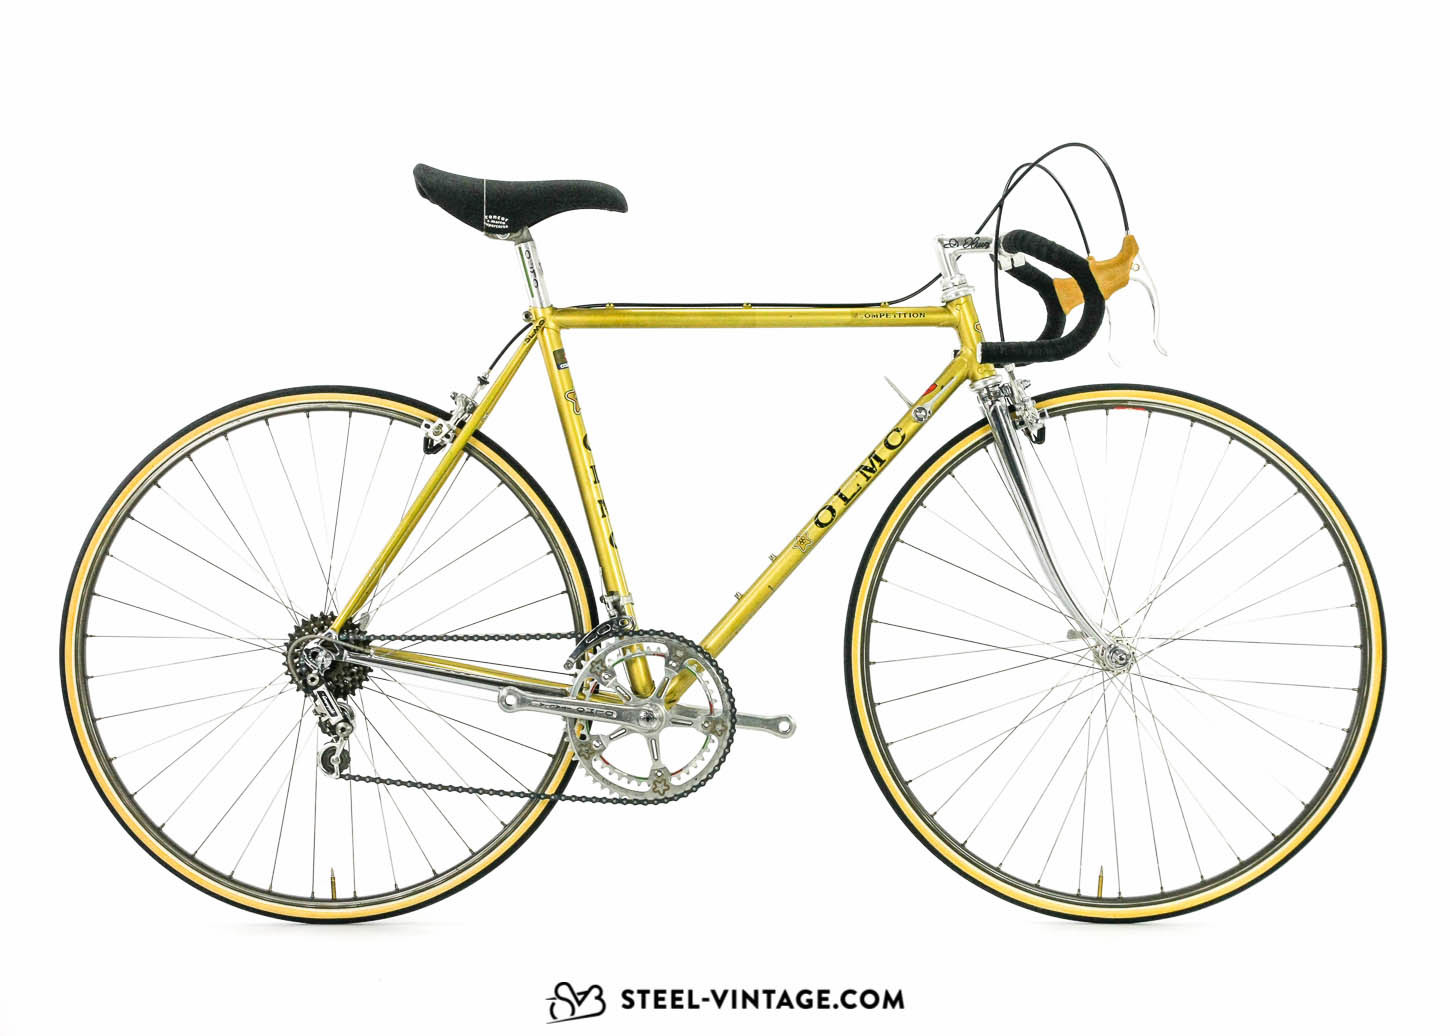 Olmo Competition SR Road Bicycle 1979